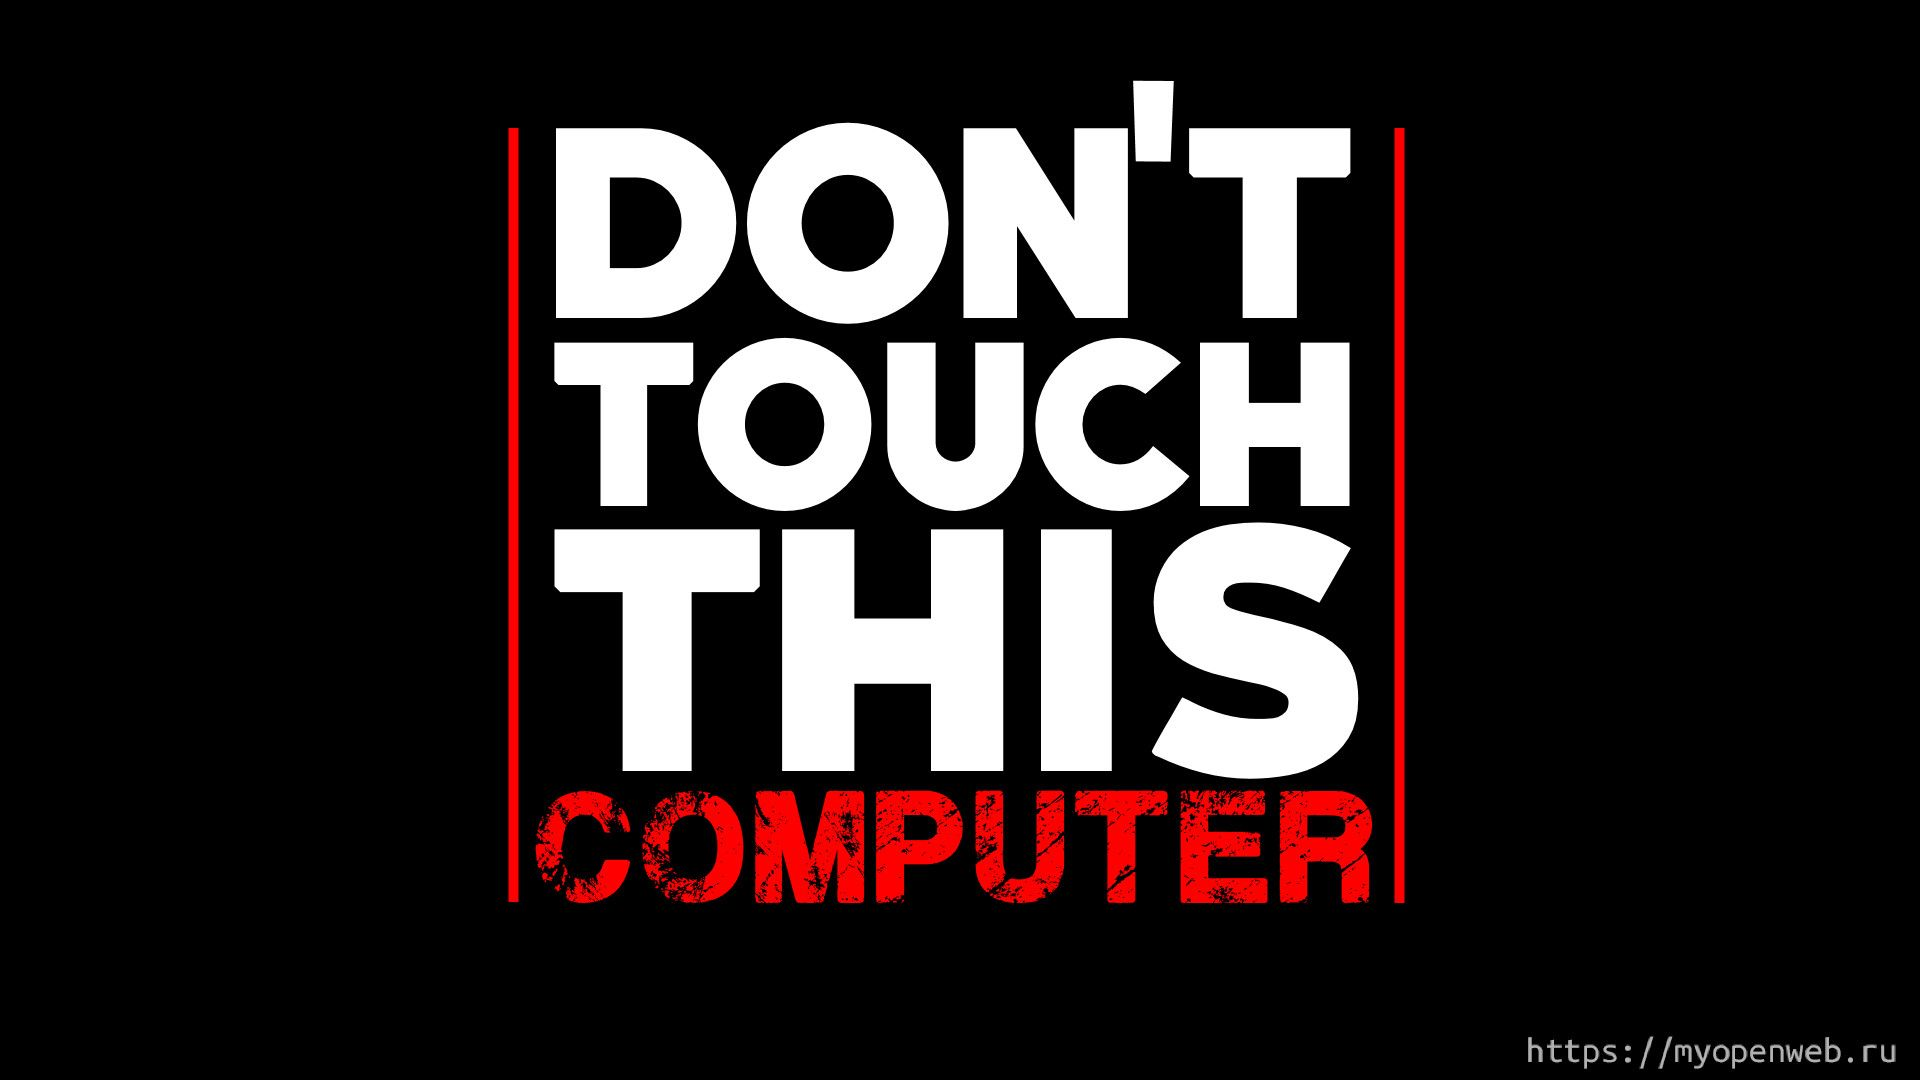 1920x1080 Dont Touch My Pc Screensaver Downloadcom Computer Wallpaper Hd Computer Wallpaper Dont Touch My Phone Wallpapers